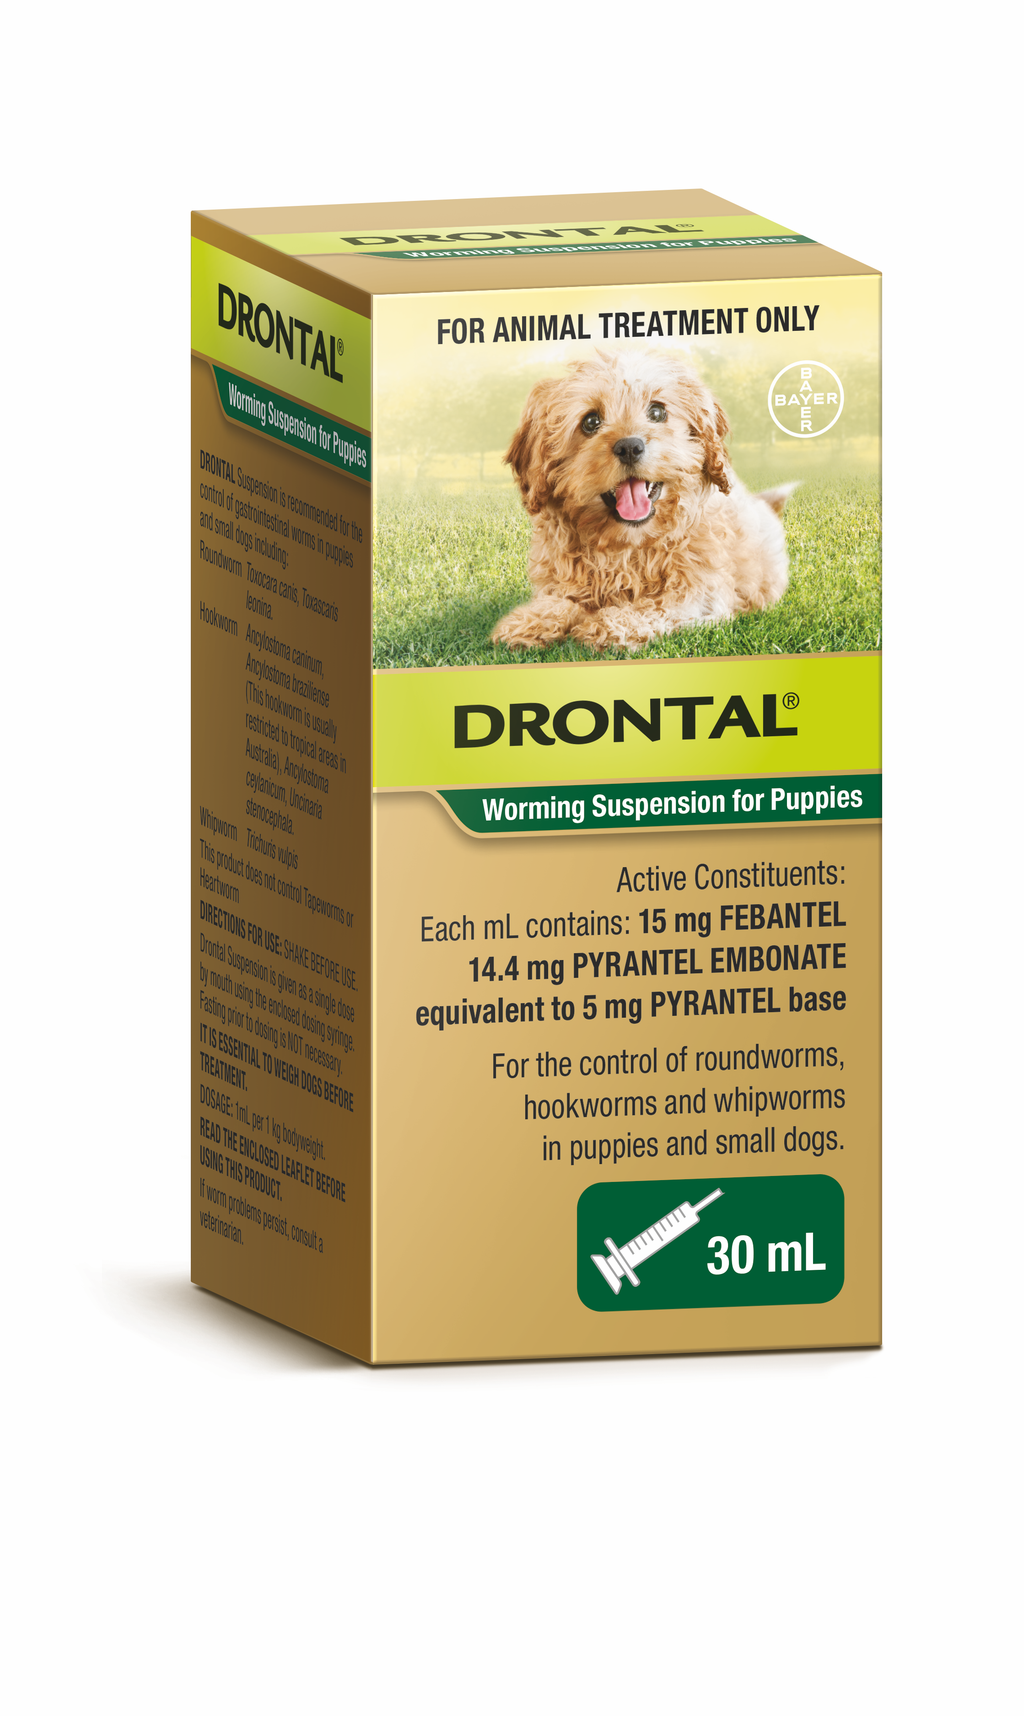 Drontal Worming Suspension for Puppies - 30ml